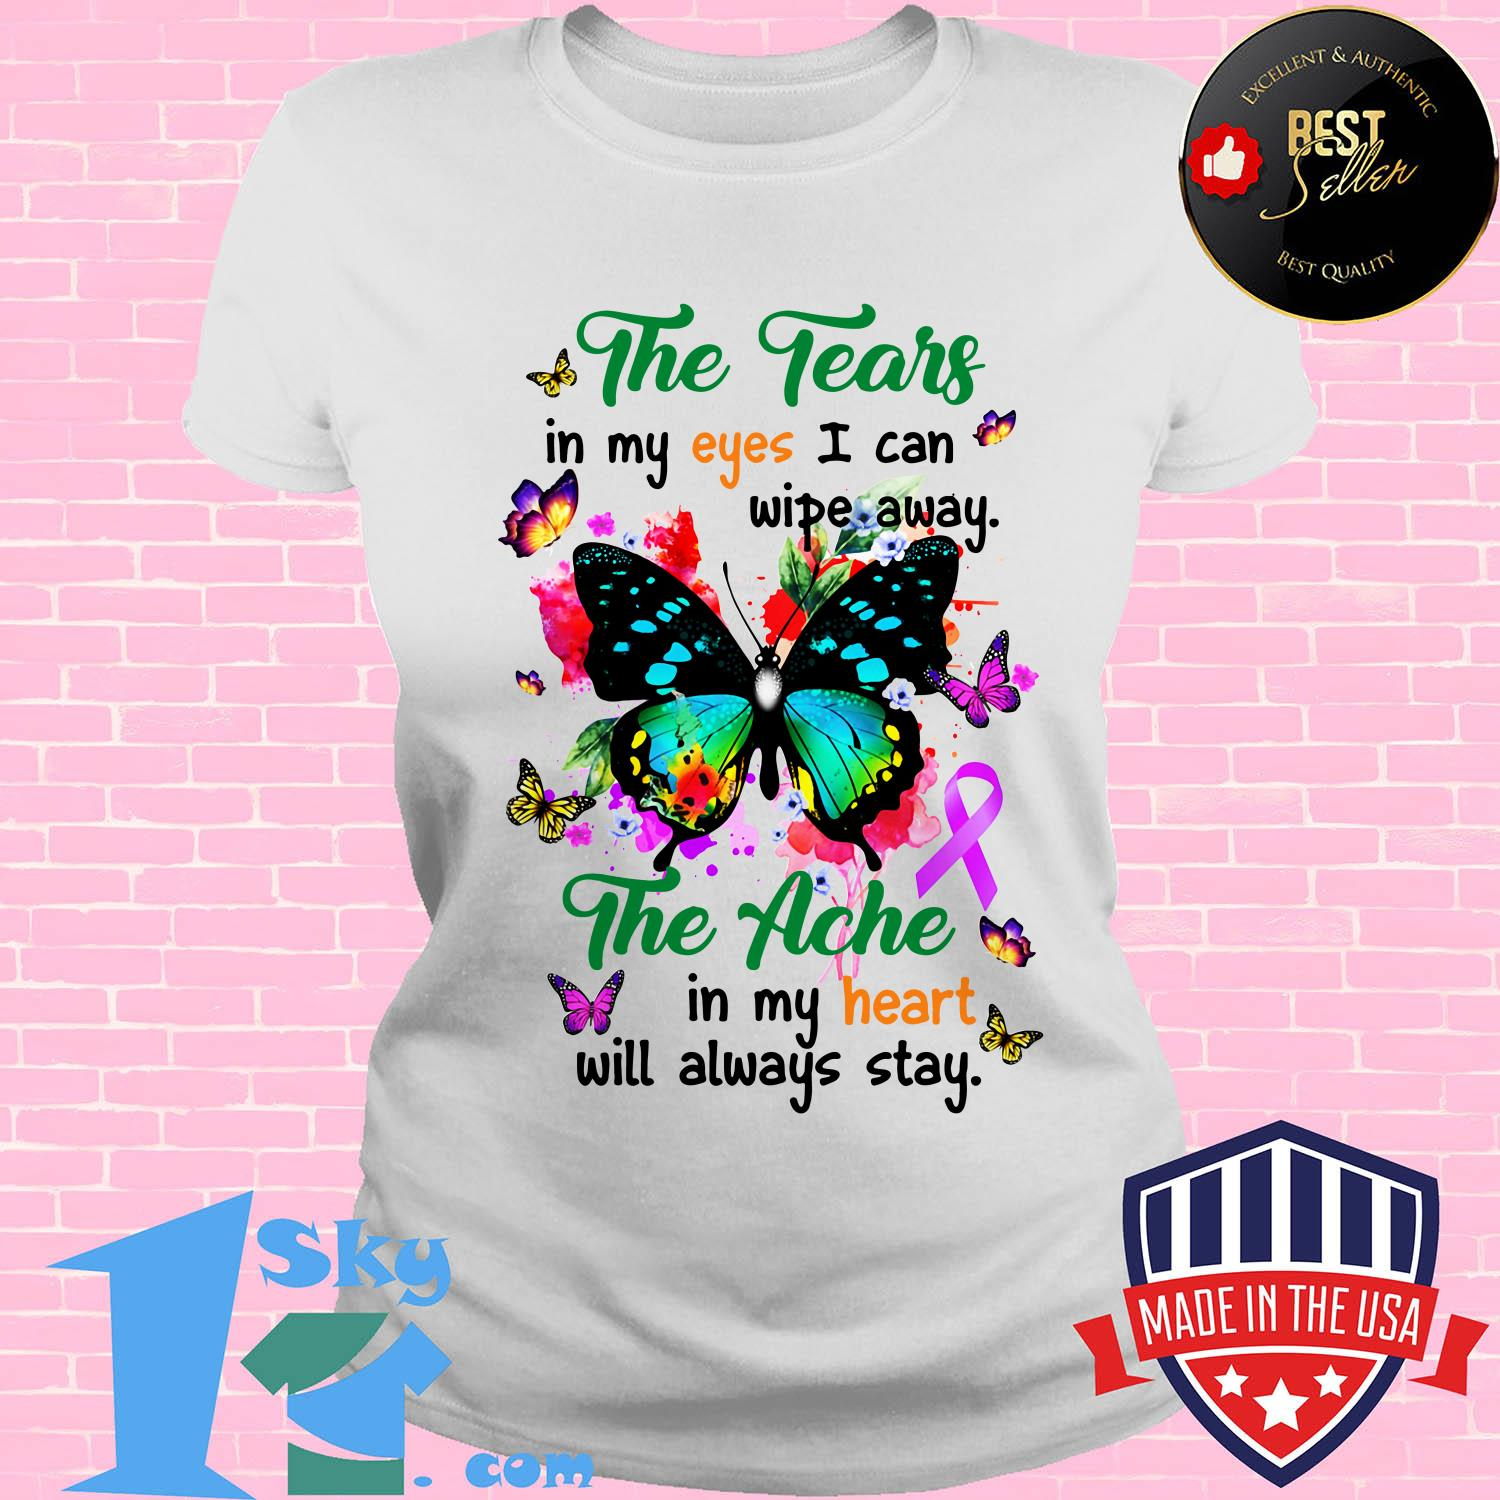 the tears in my eyes i can wipe away the ache in my heart will always butterfly stay ladies tee - The tears in my eyes I can wipe away the ache in my heart will always butterfly stay shirt